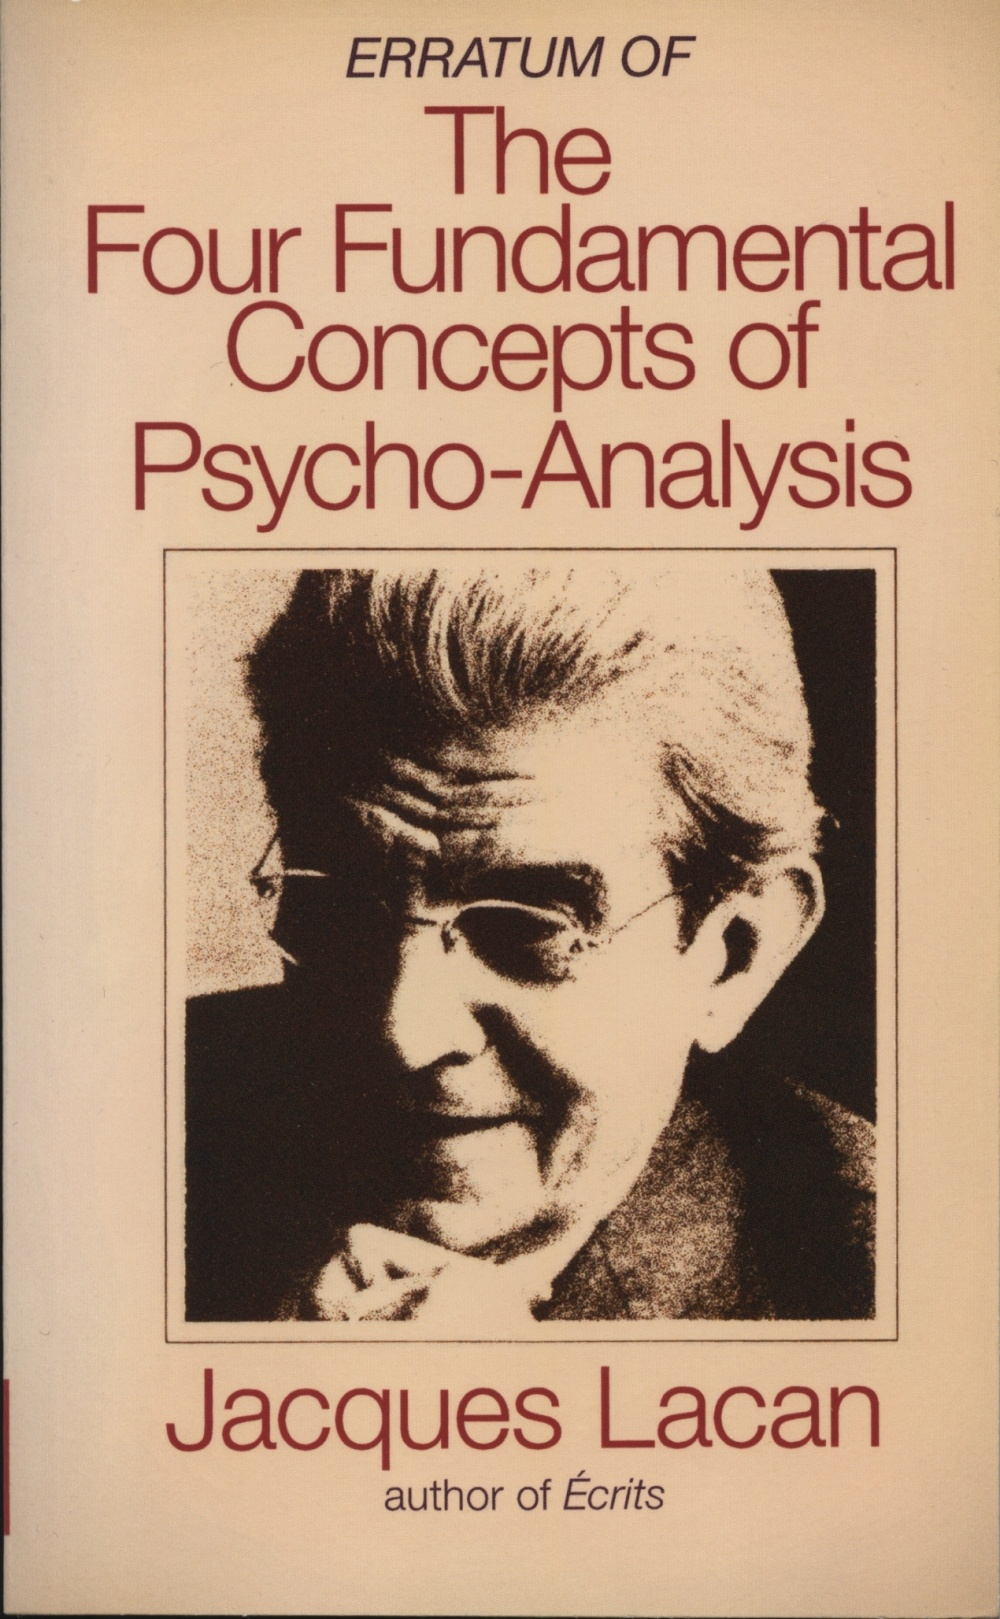 Erratum of the Four Fundamental Concepts of Psycho-Analysis